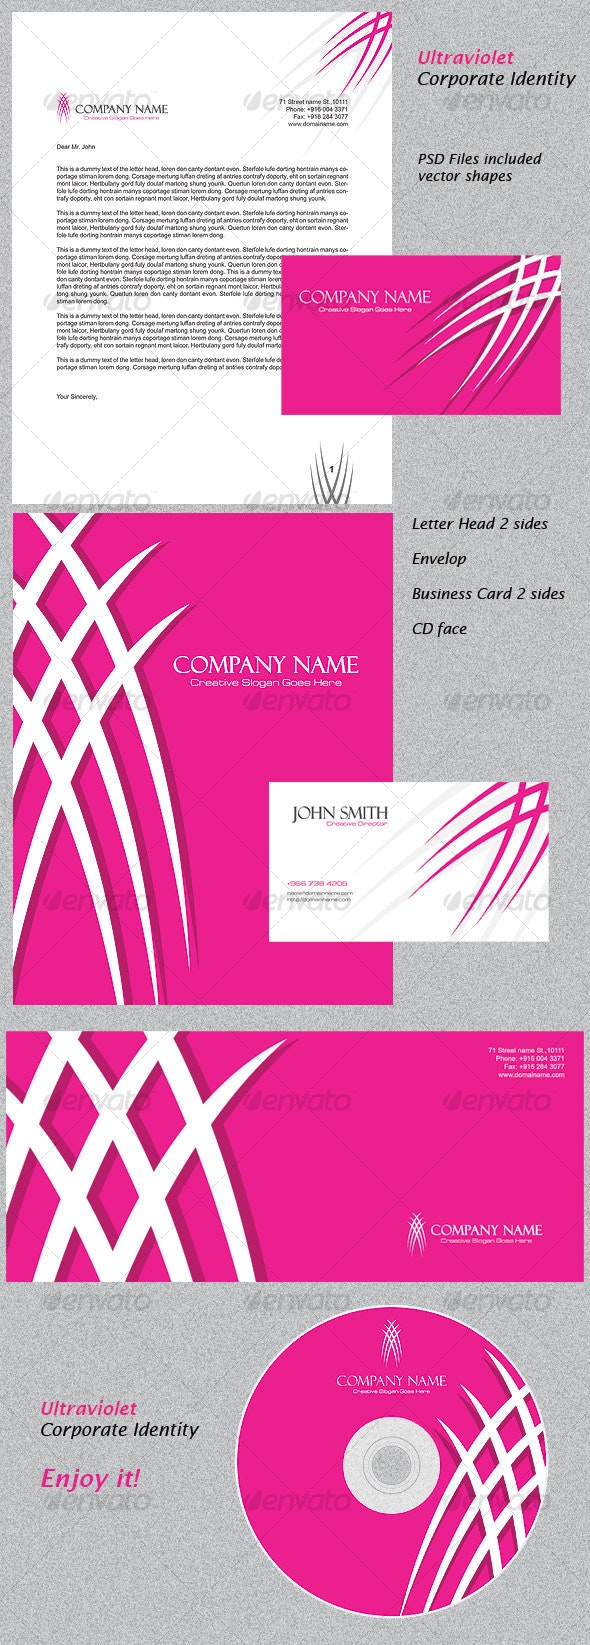 Ultraviolet Corporate Identity - Miscellaneous Print Templates